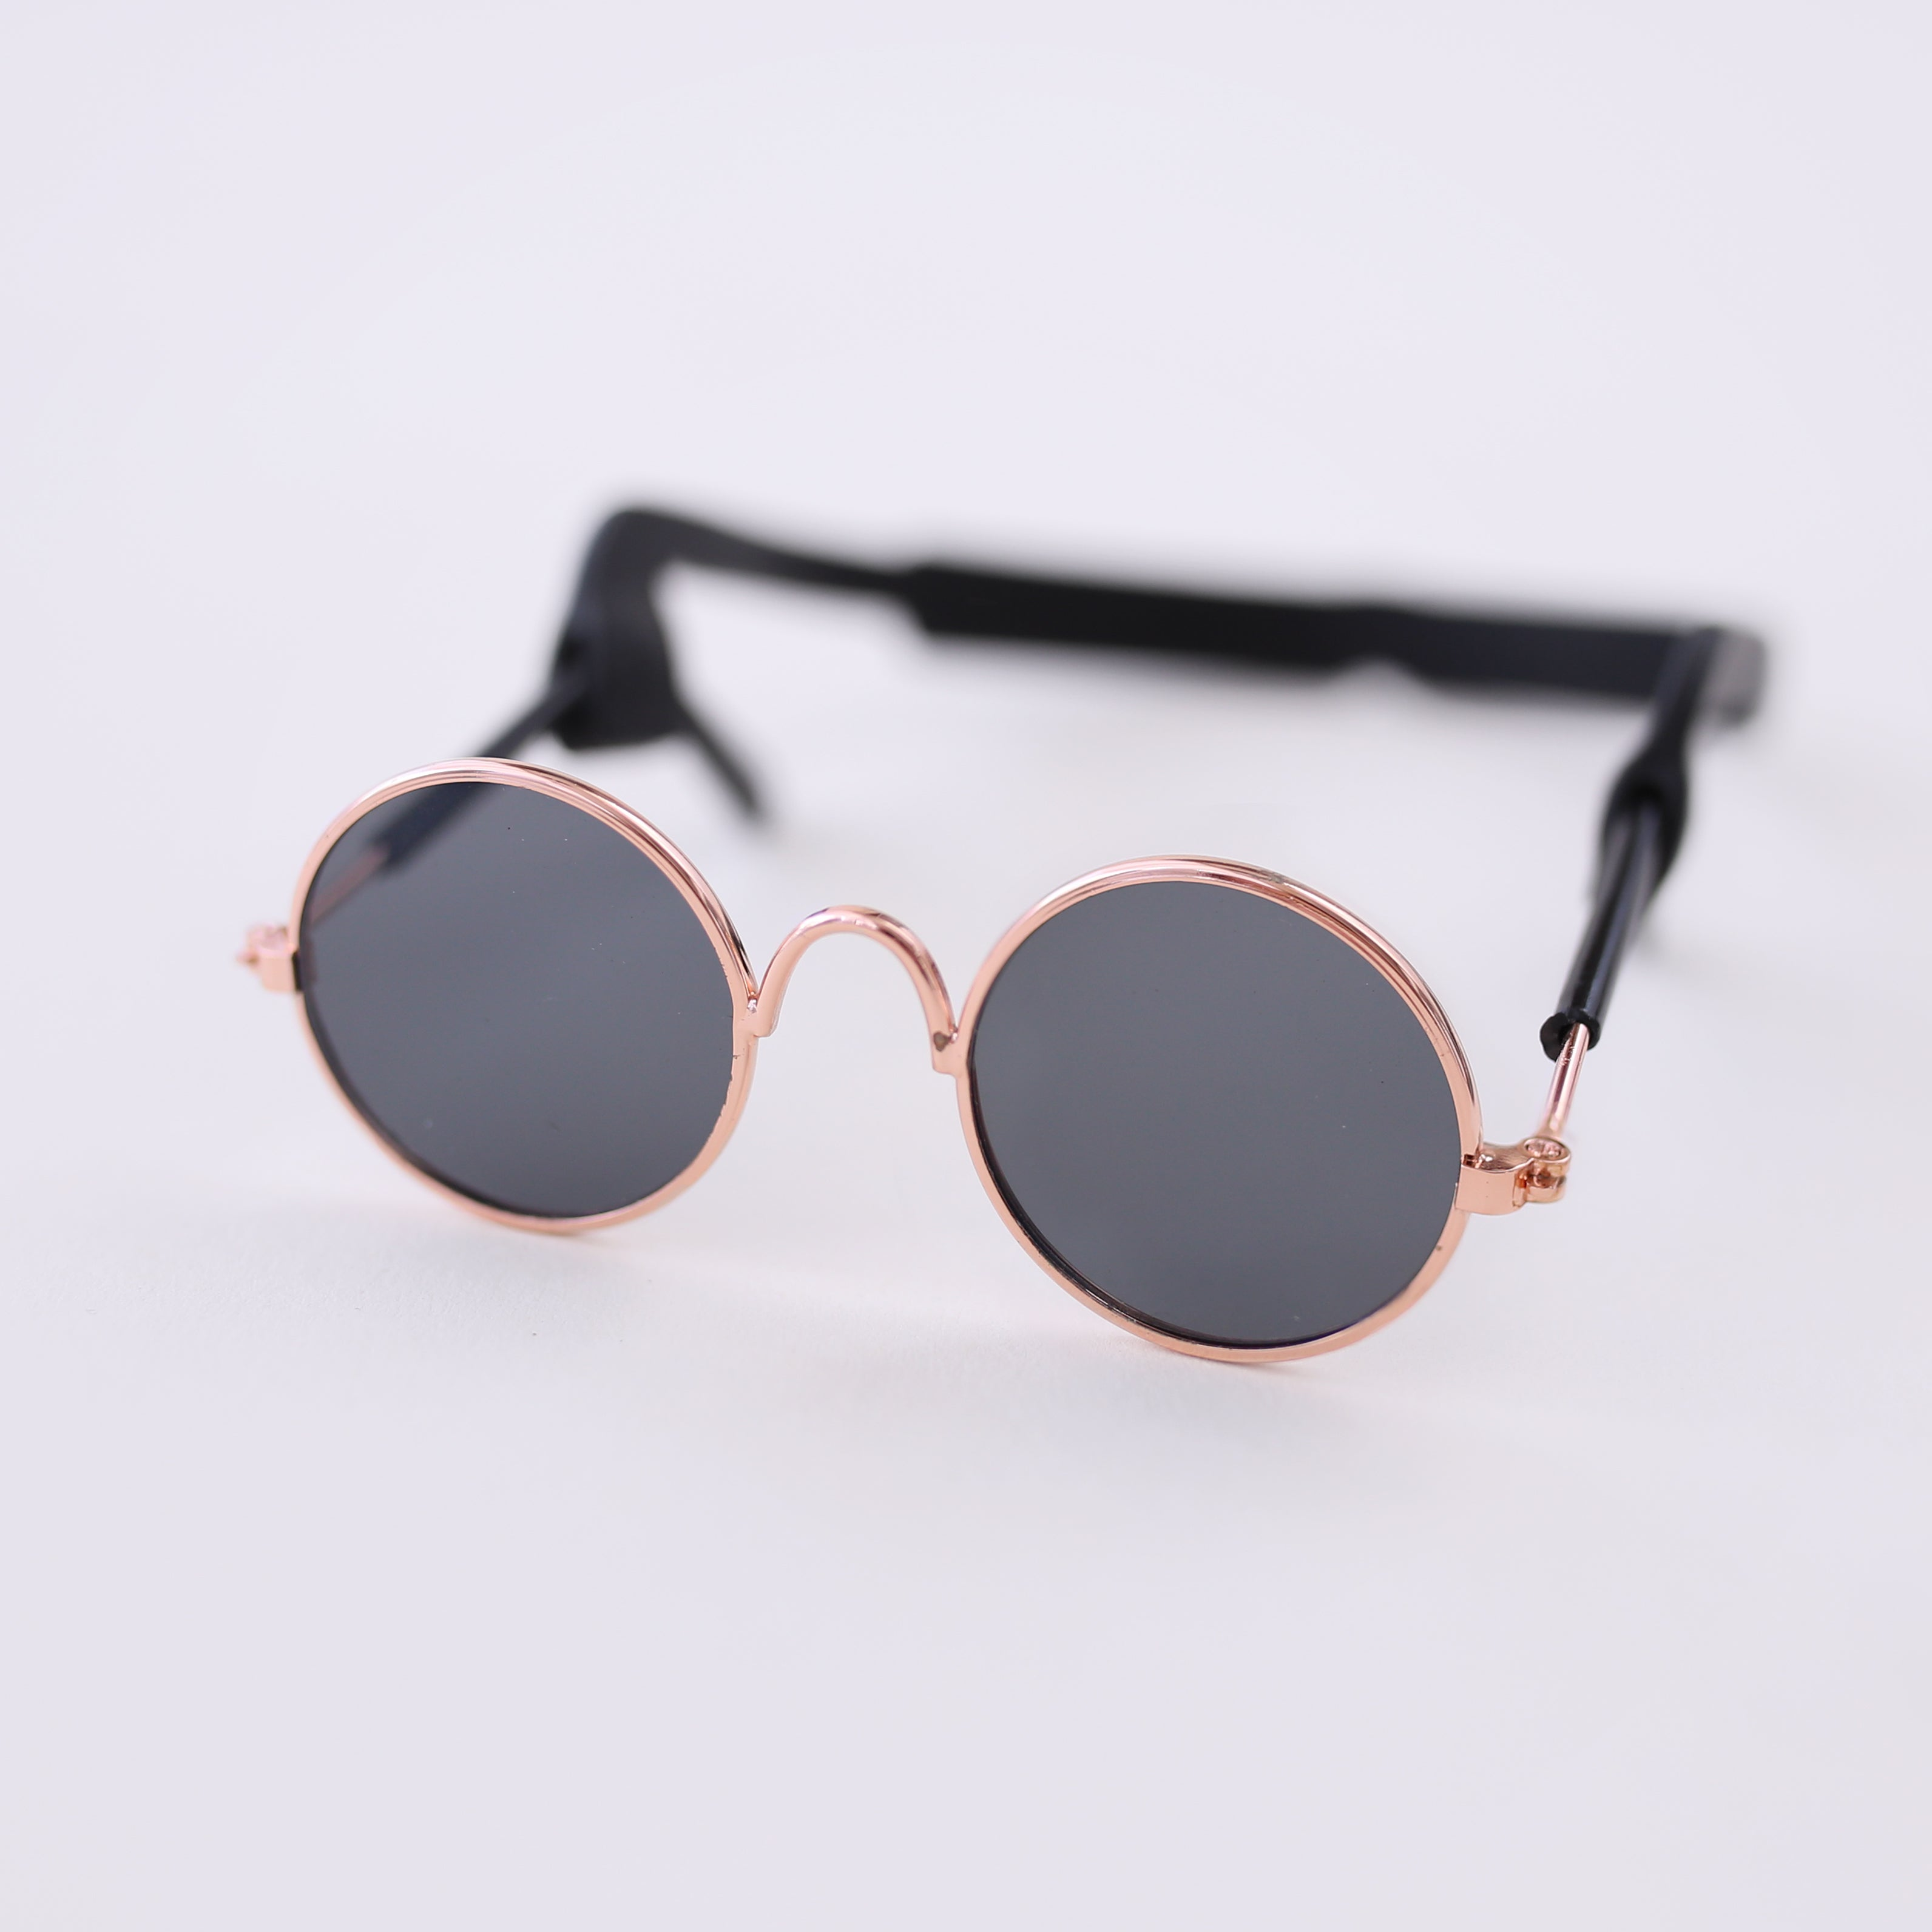 Black Retro Dog Sunglasses